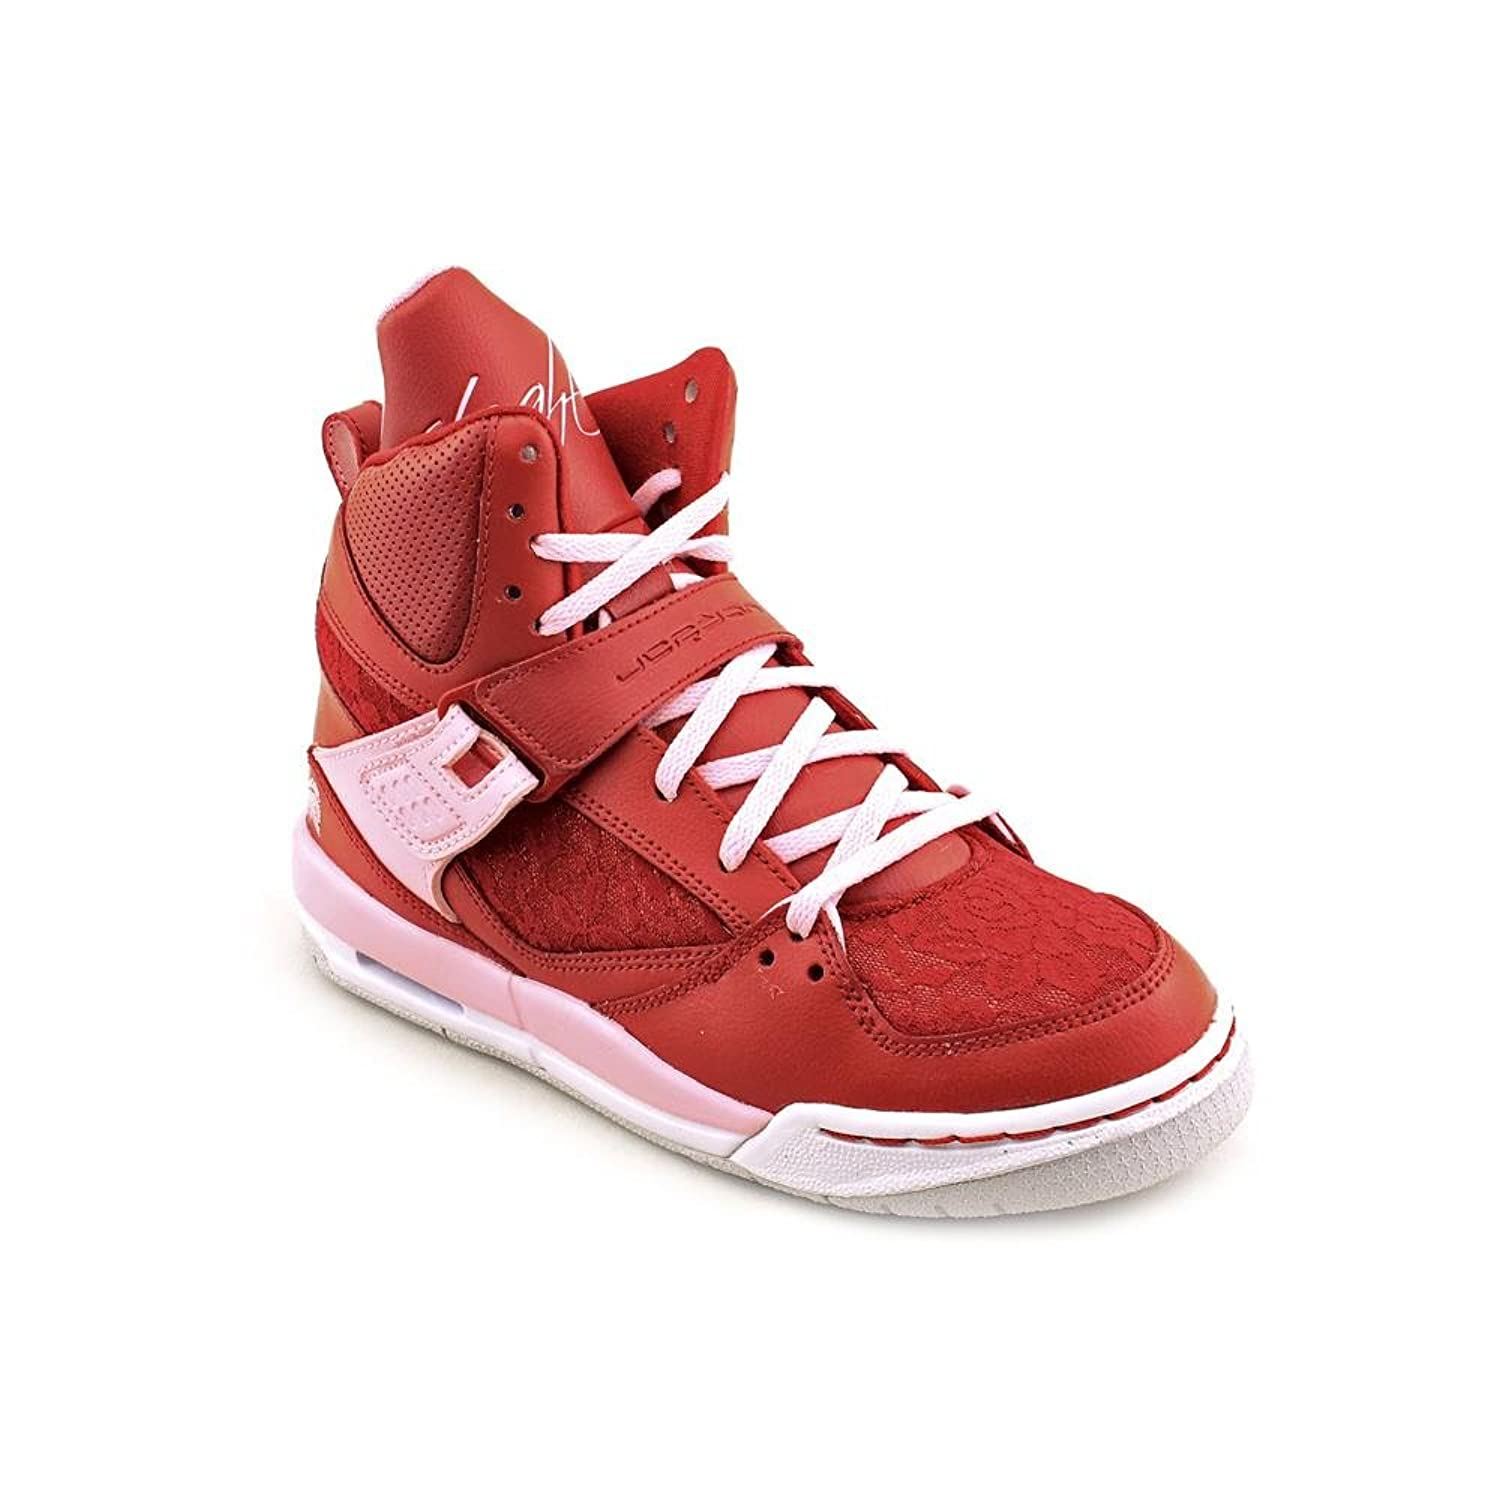 Amazon.com | Jordan GIRLS JORDAN FLIGHT 45 HI PREMIUM (GS) VIVID GYM RED  547769 605 Size 7y | Basketball